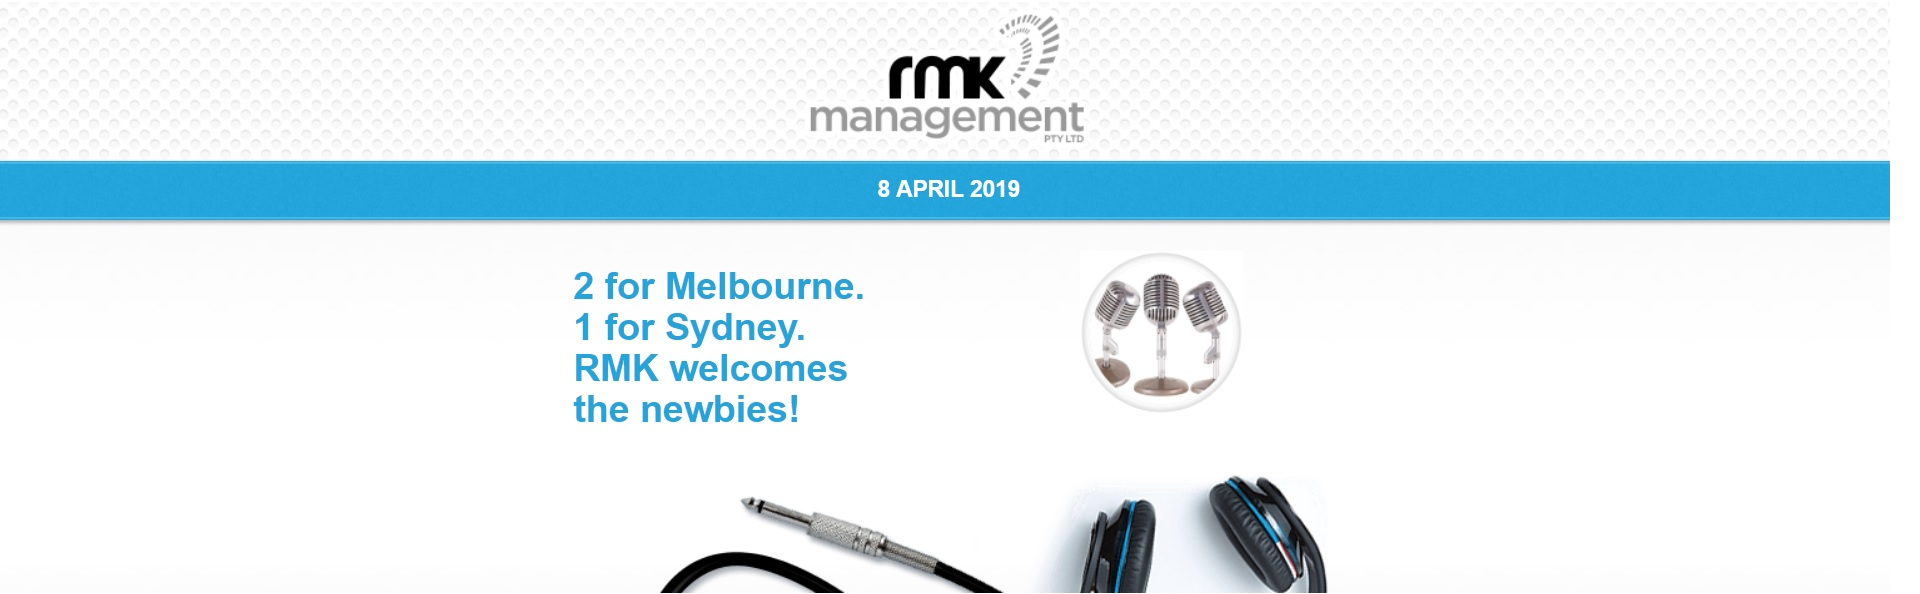 2 for Melbourne. 1 for Sydney. RMK welcomes the newbies!